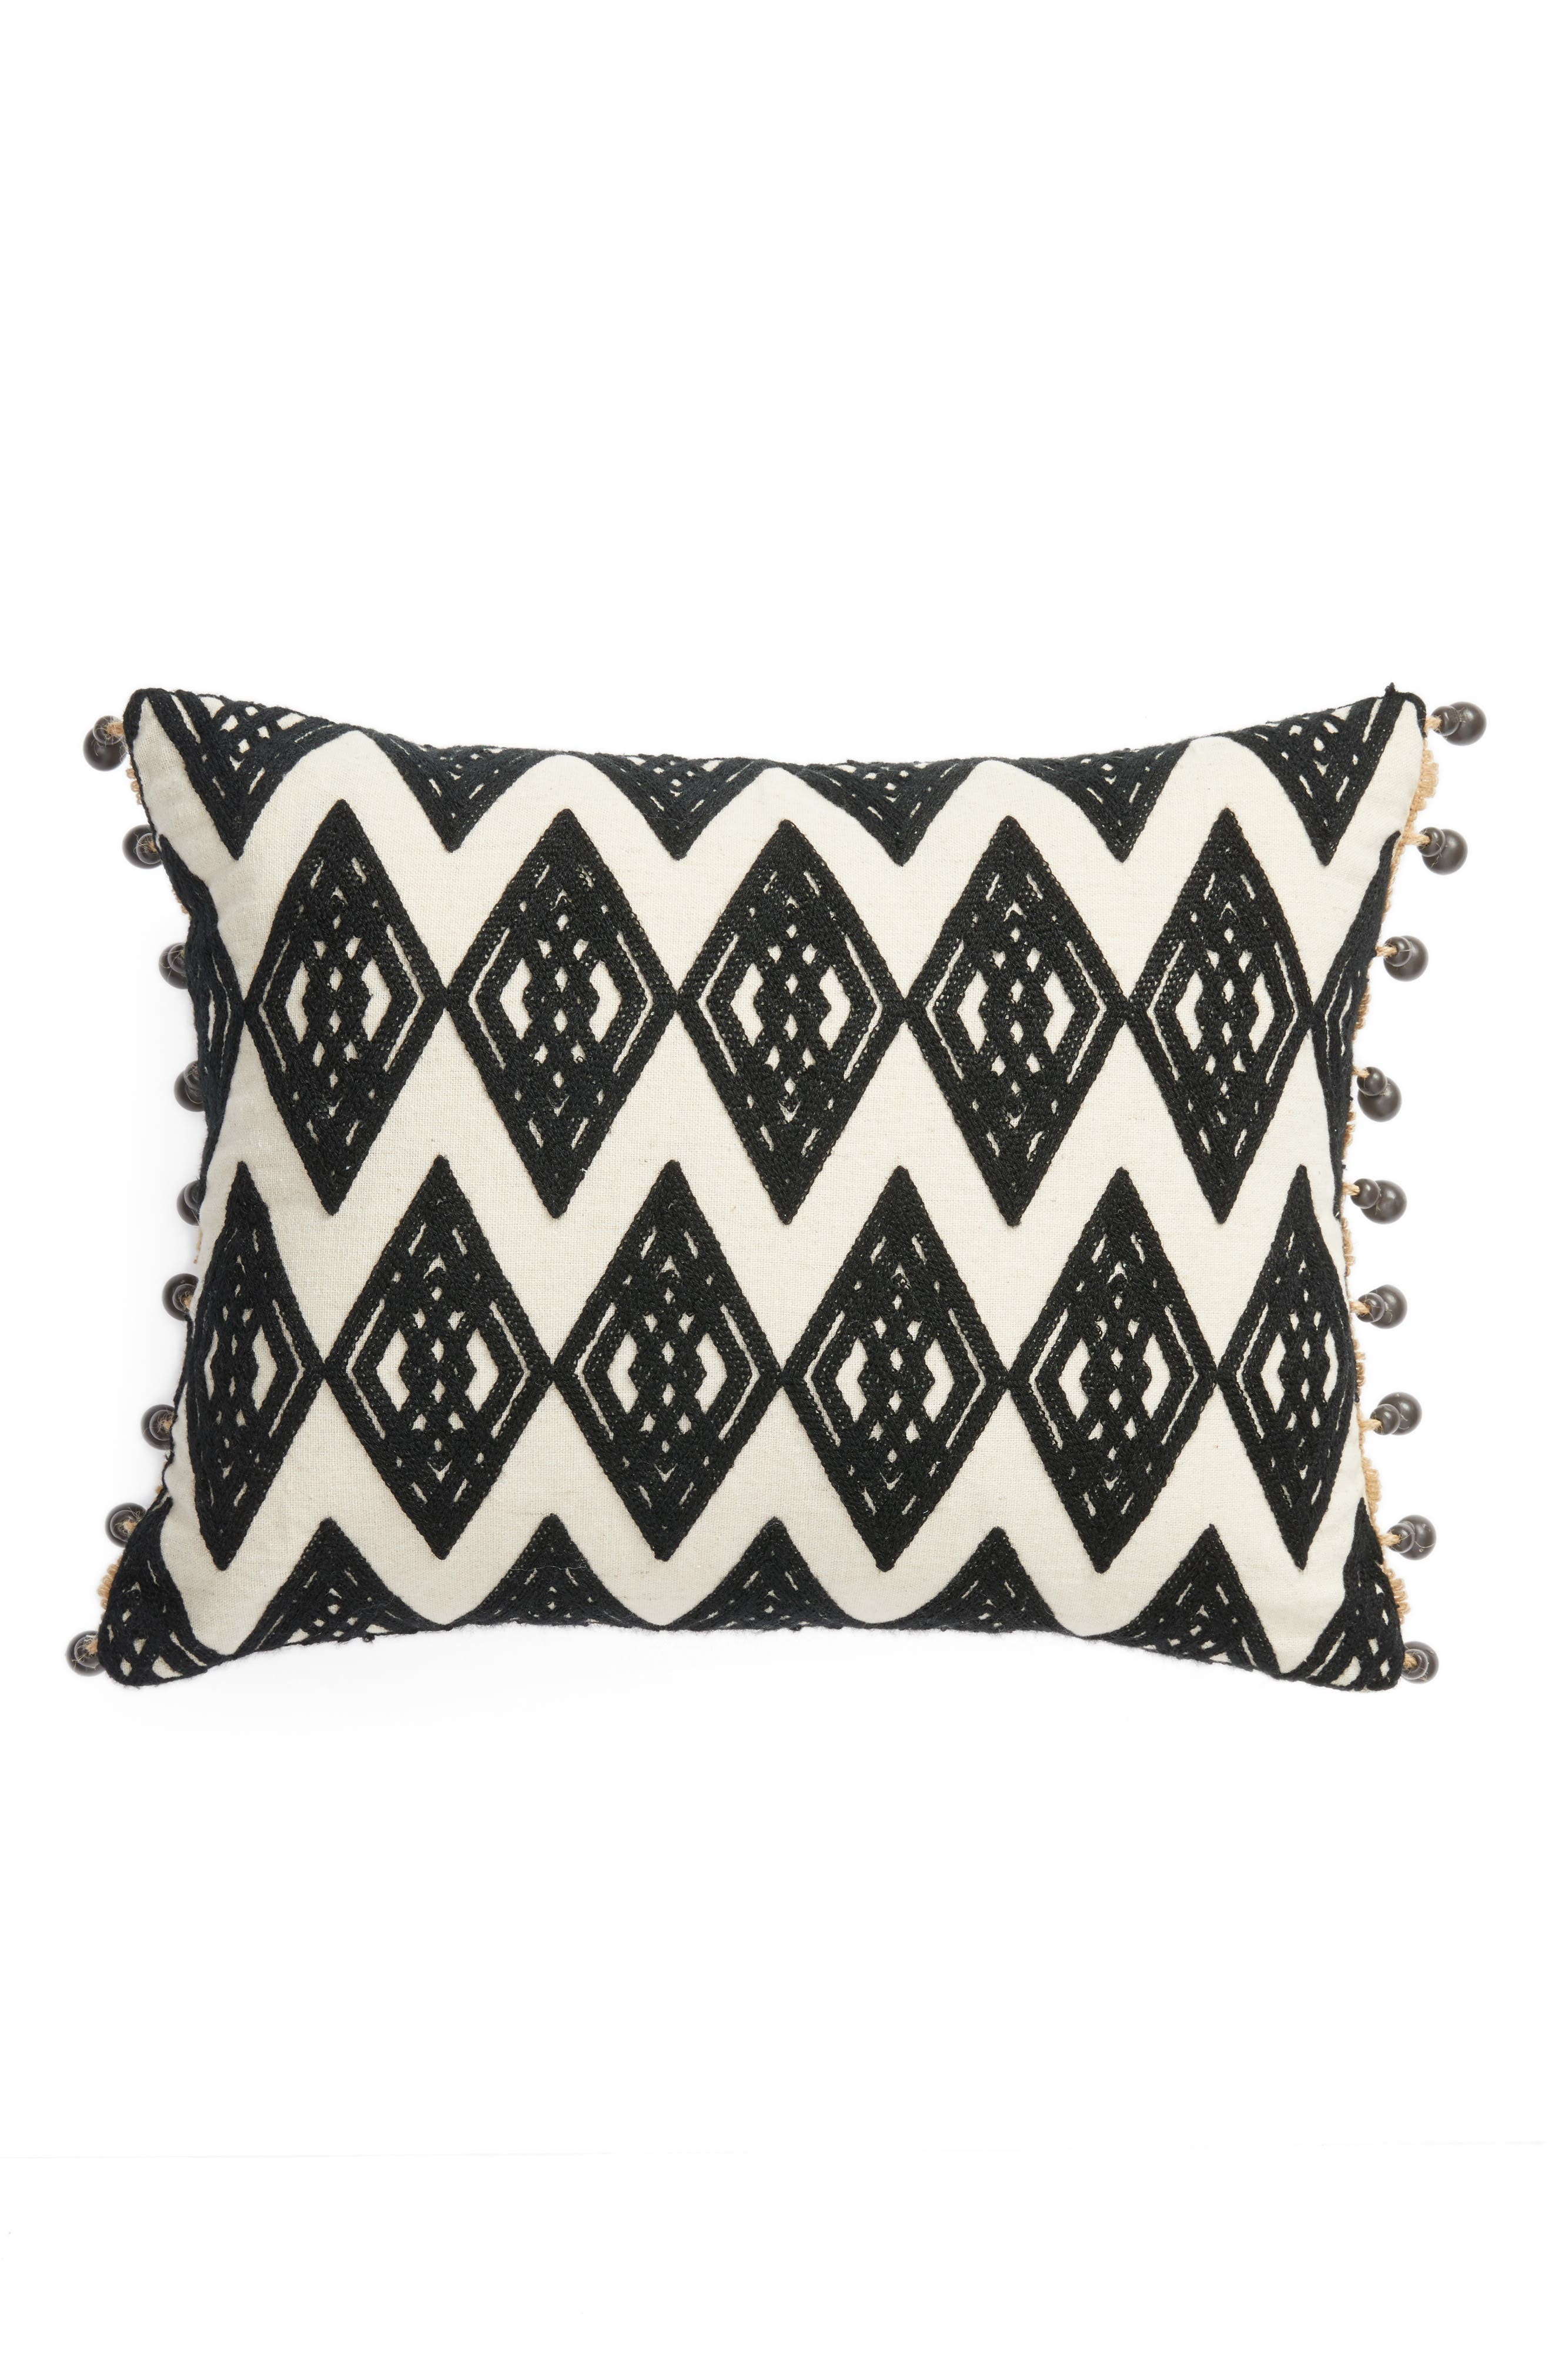 Alternate Image 1 Selected - Levtex Moroccan Crewel Embroidered Pillow